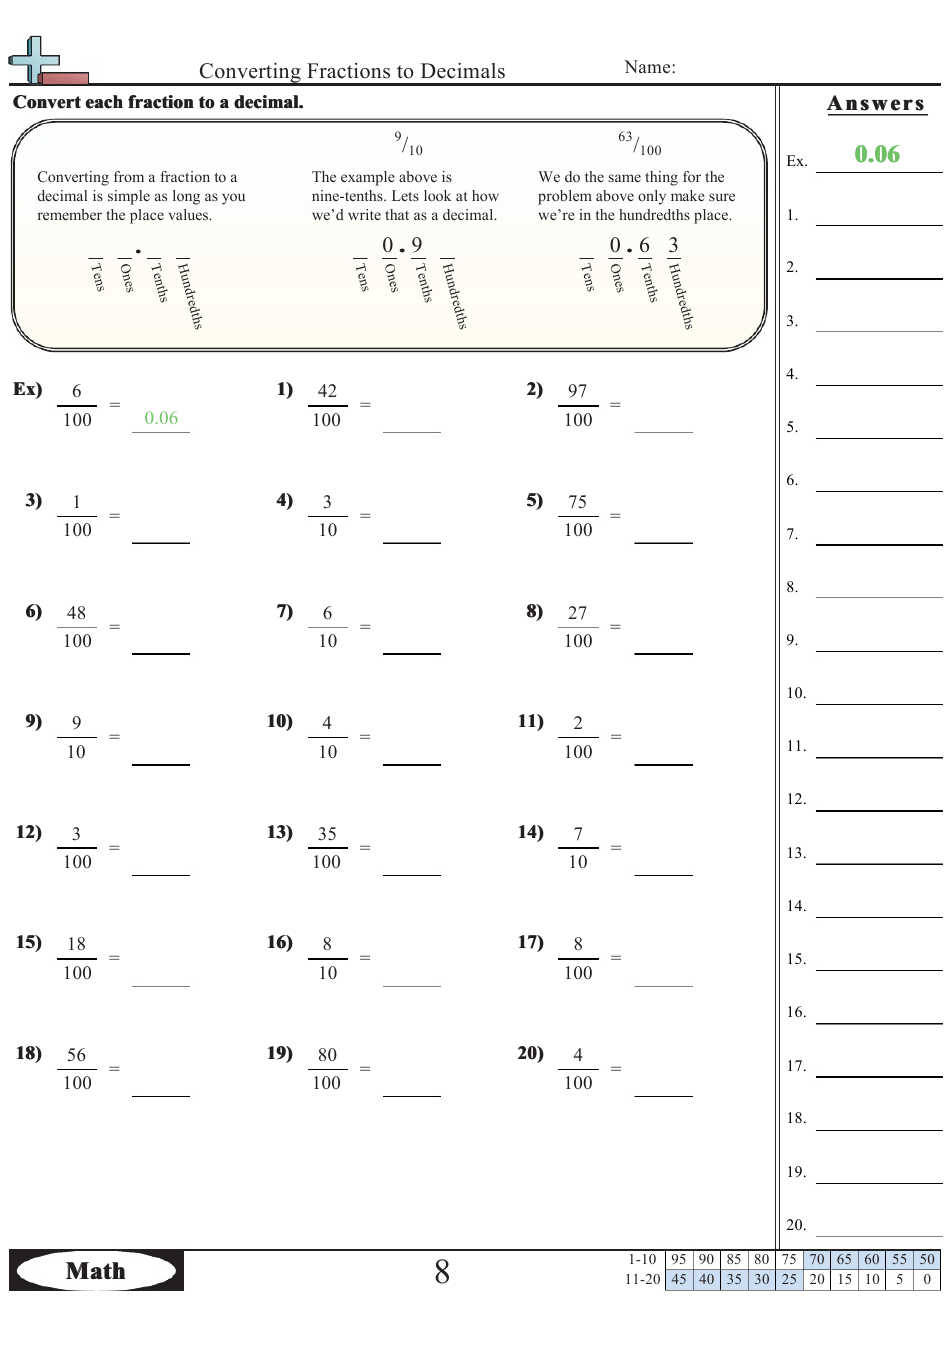 Converting Fractions to Decimals Worksheet With Answers ...